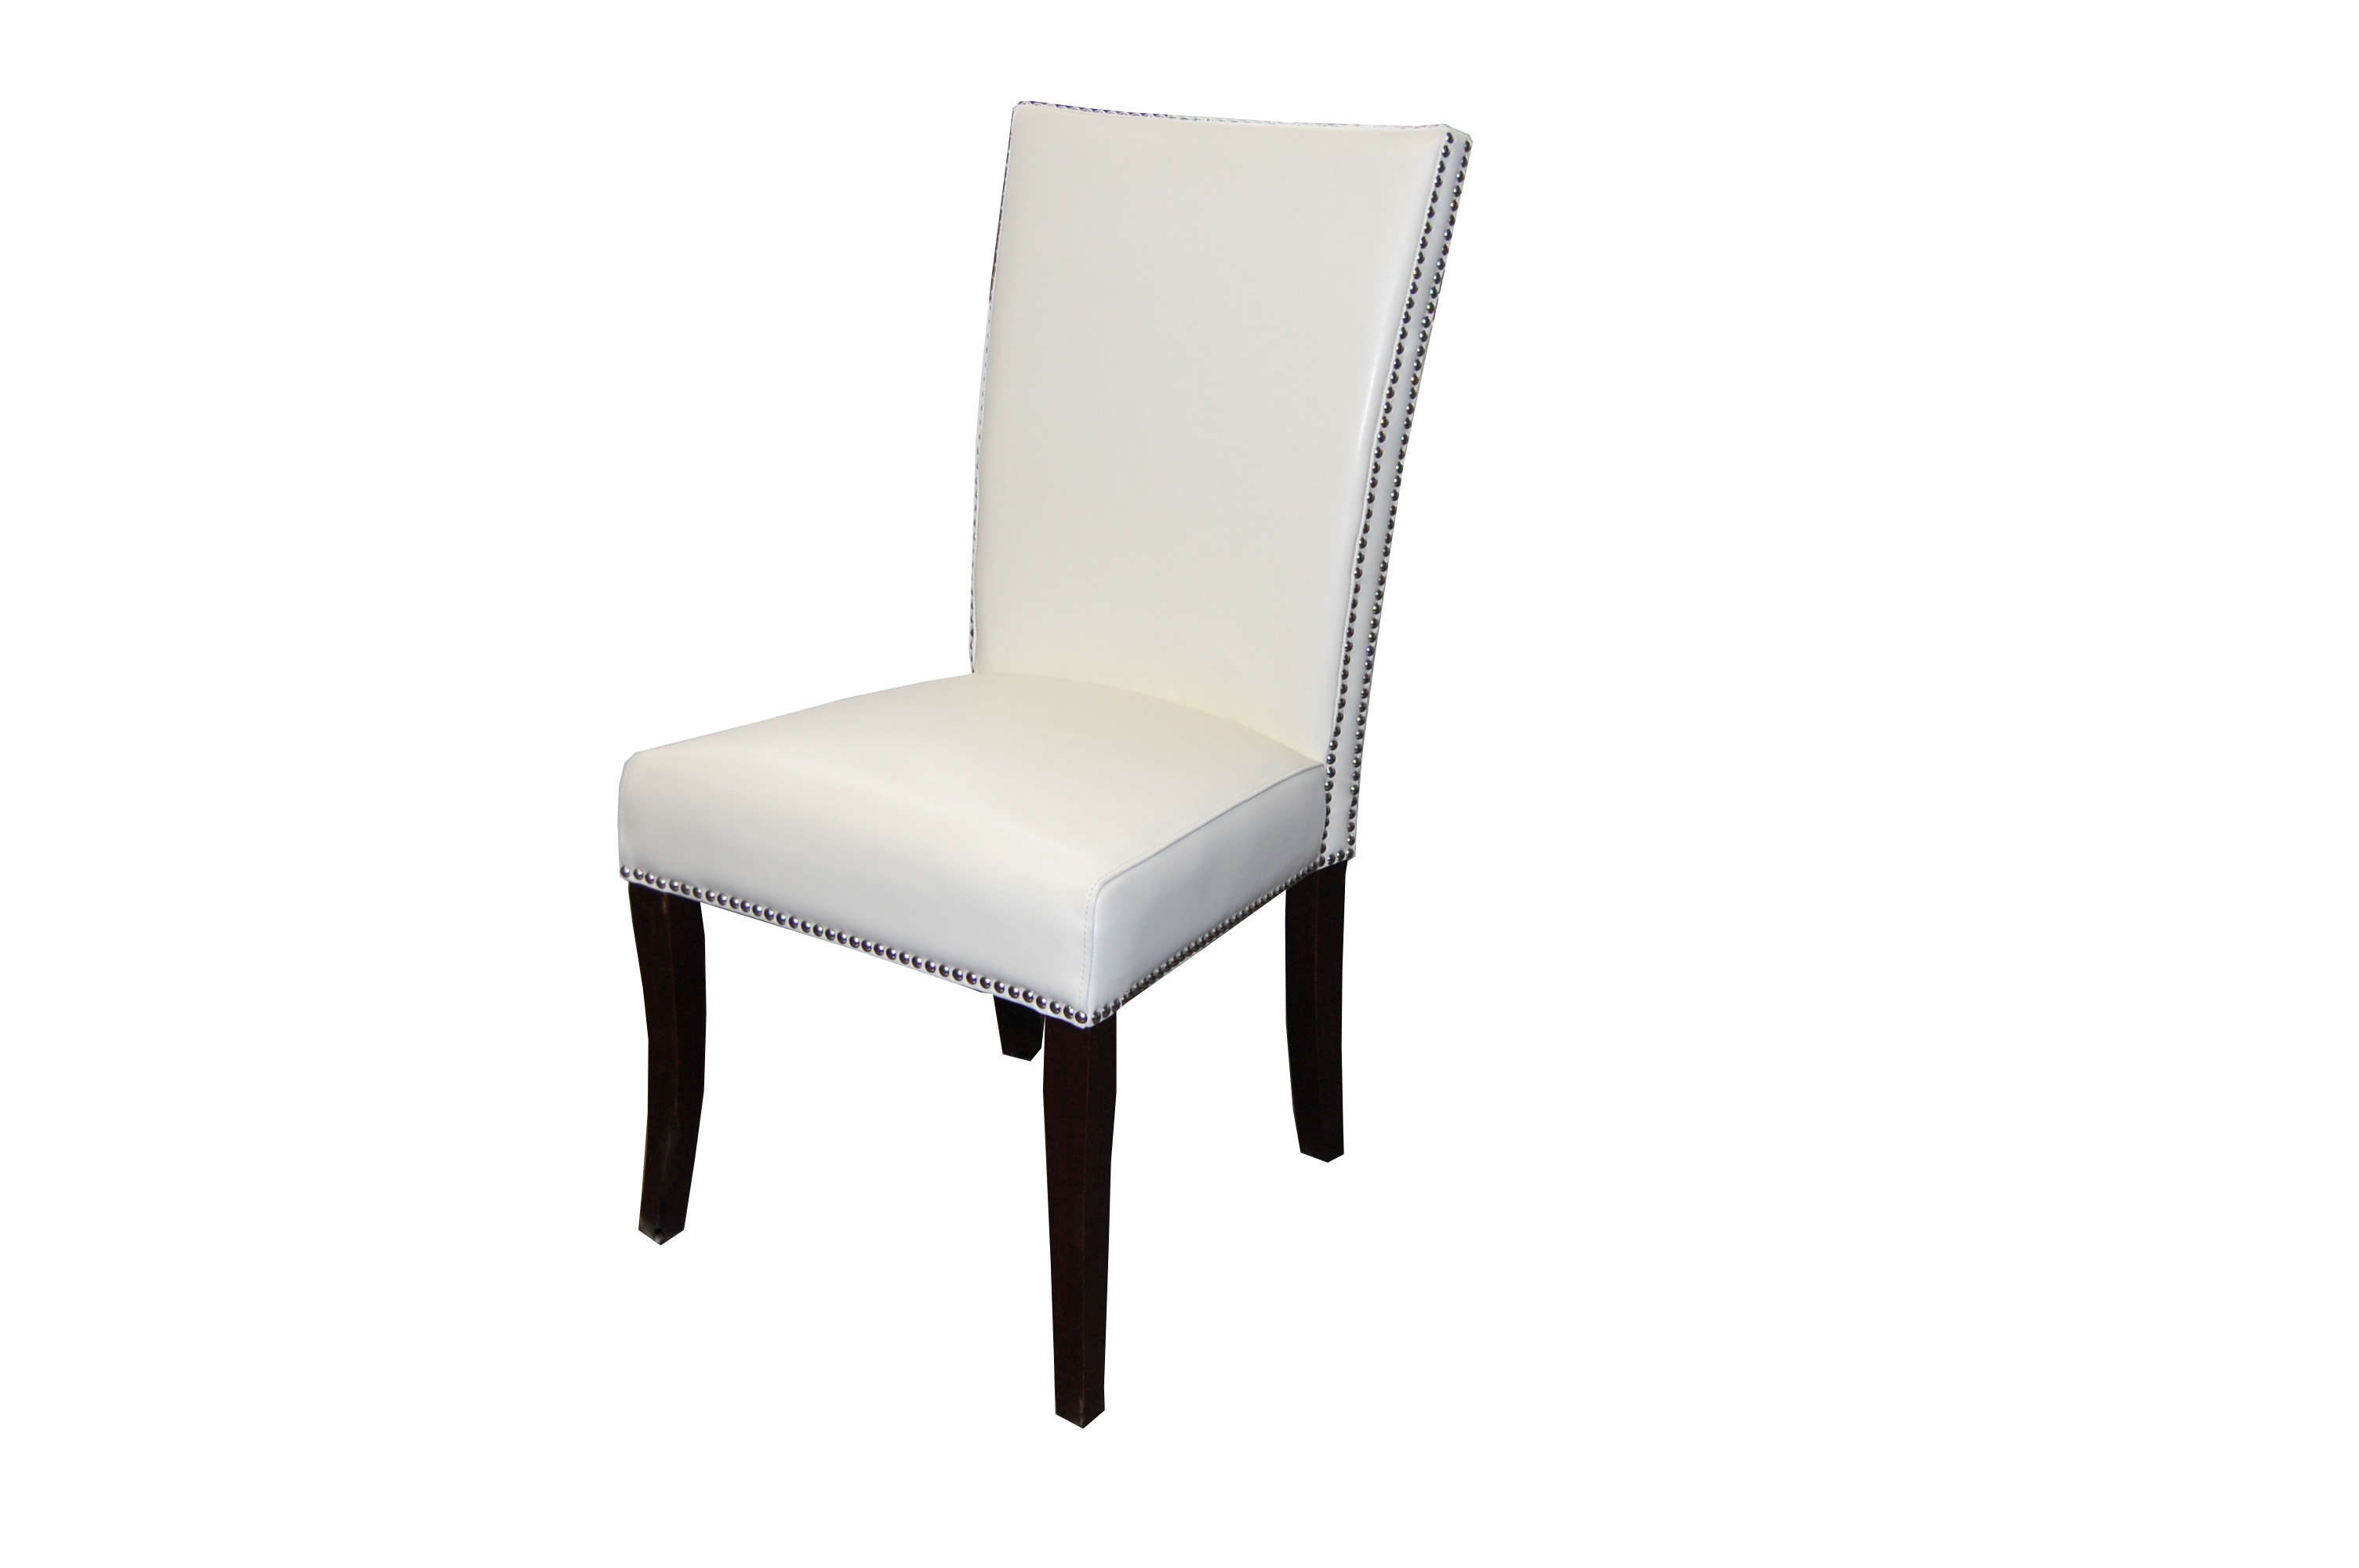 Melissa Dining Chair In PU106 White Faux Leather